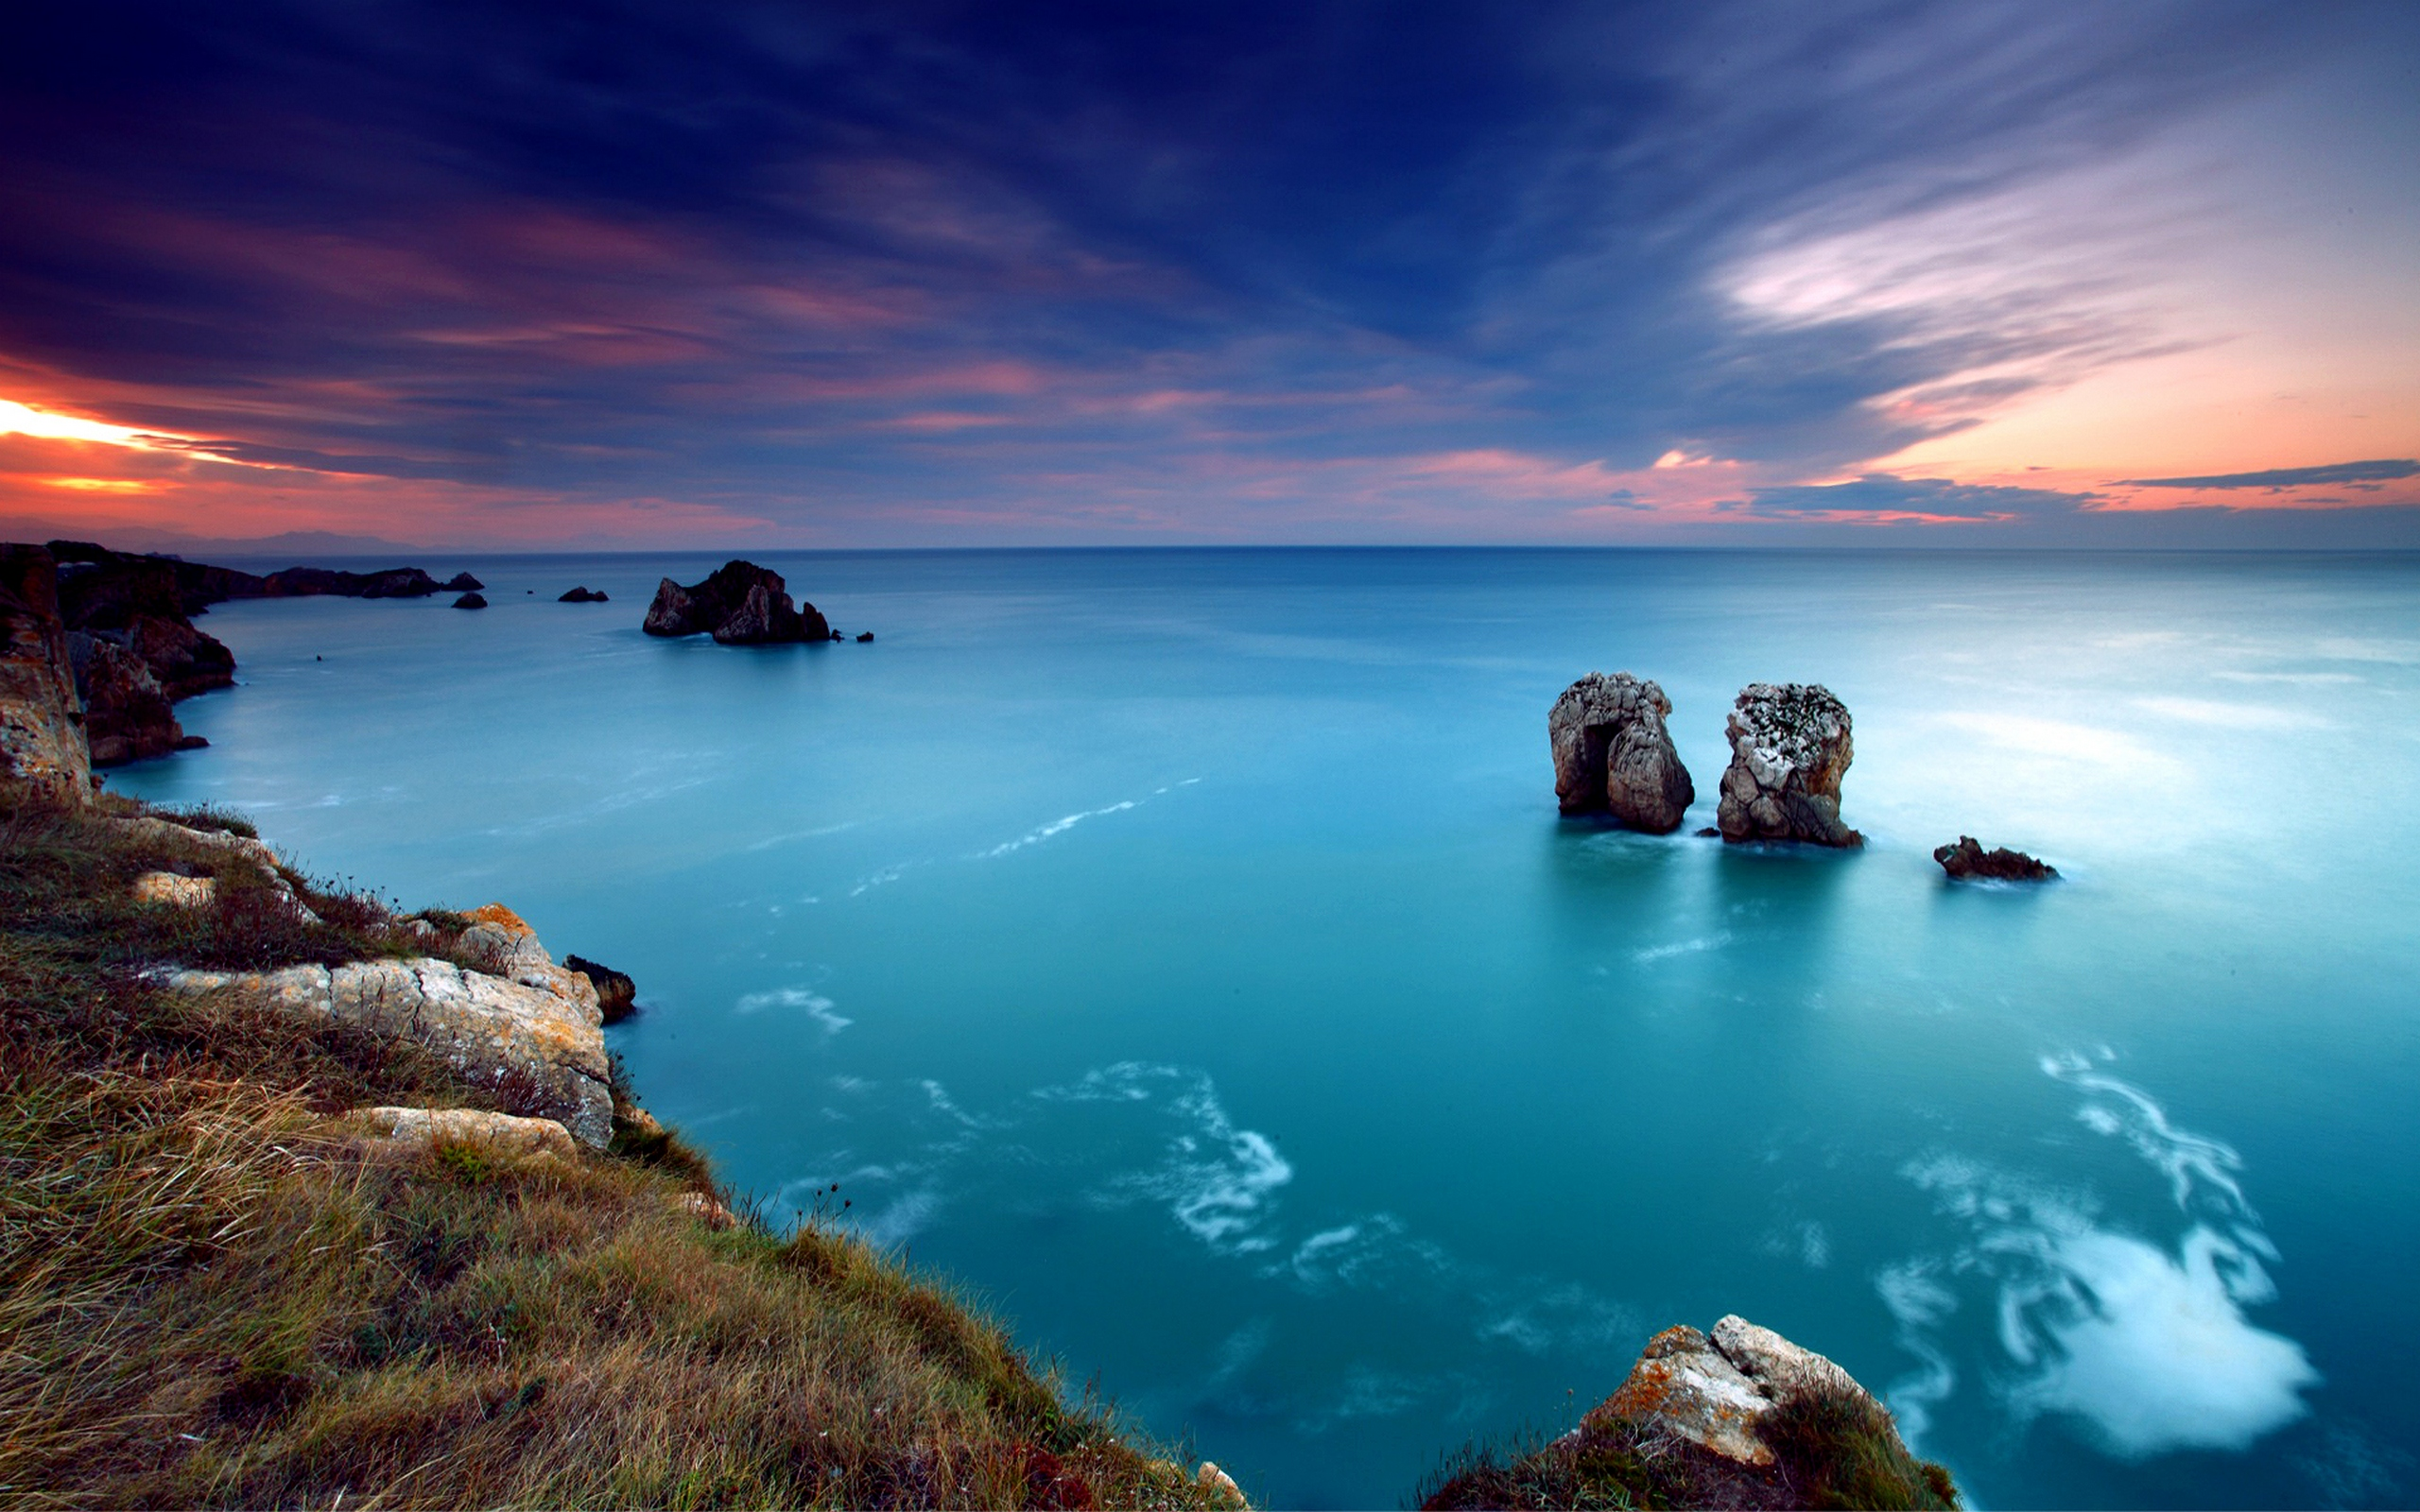 ocean sky 25601600 wallpaper beautiful ocean sunset Beautiful 2560x1600